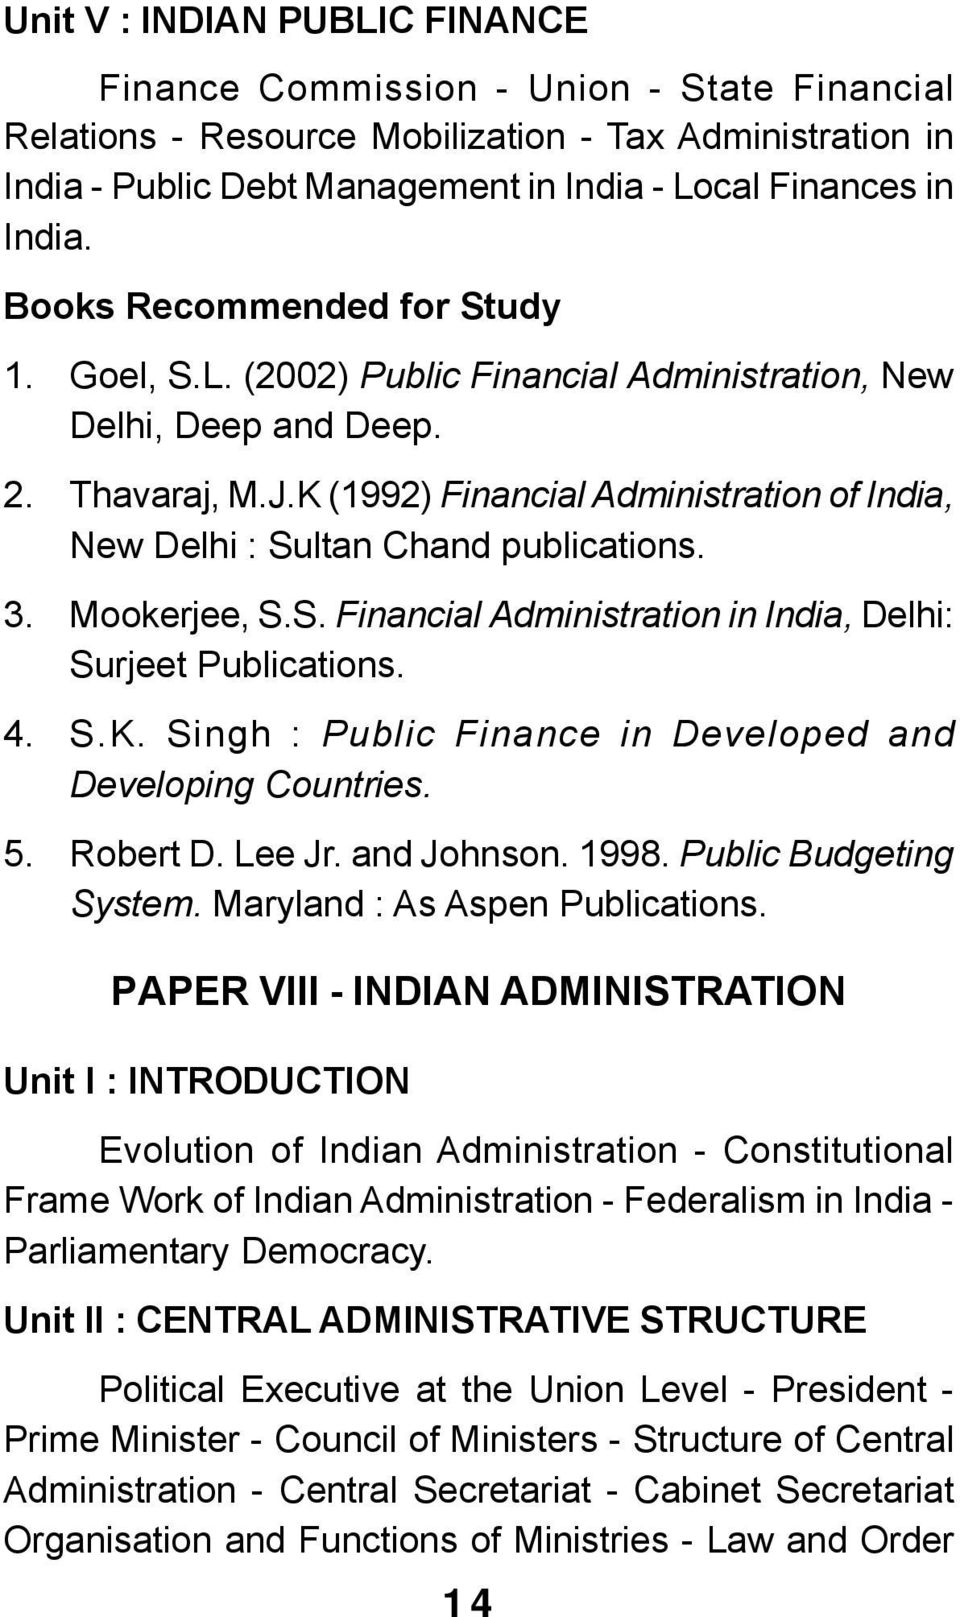 India. Books Recommended for Study 1. Goel, S.L. (2002) Public Financial Administration, New Delhi, Deep and Deep. 2. Thavaraj, M.J.